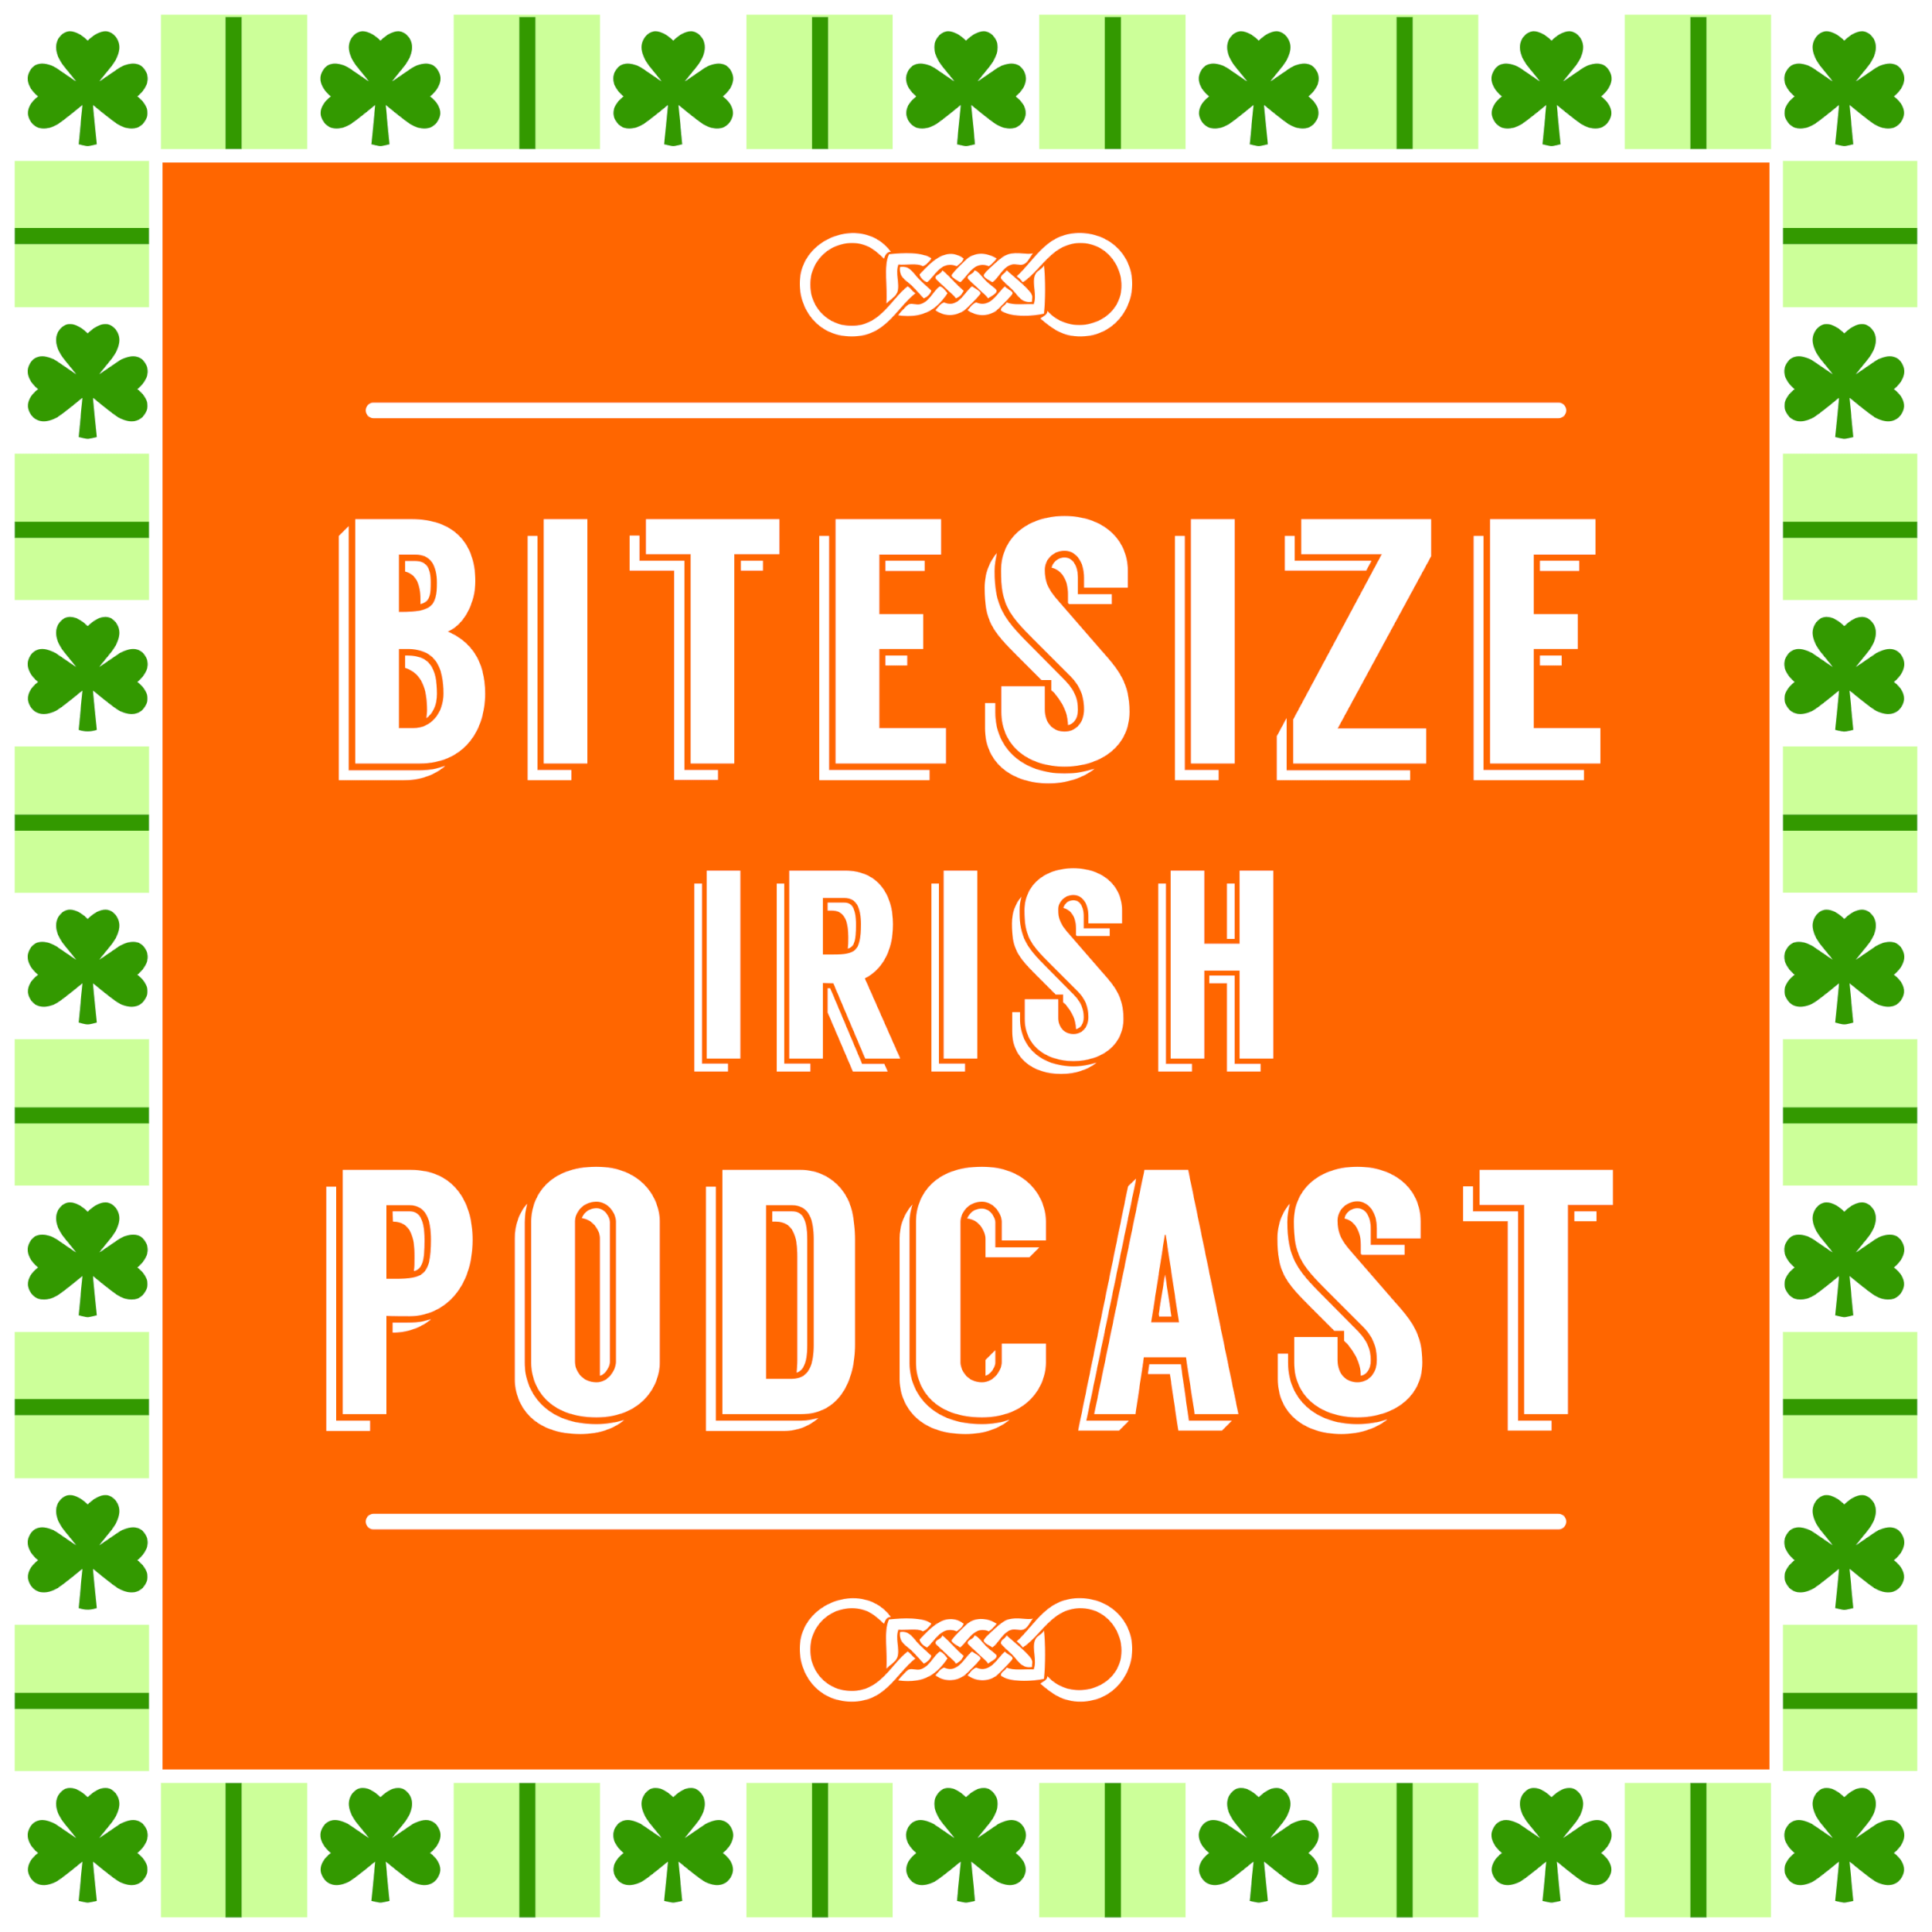 Bitesize Irish Podcast